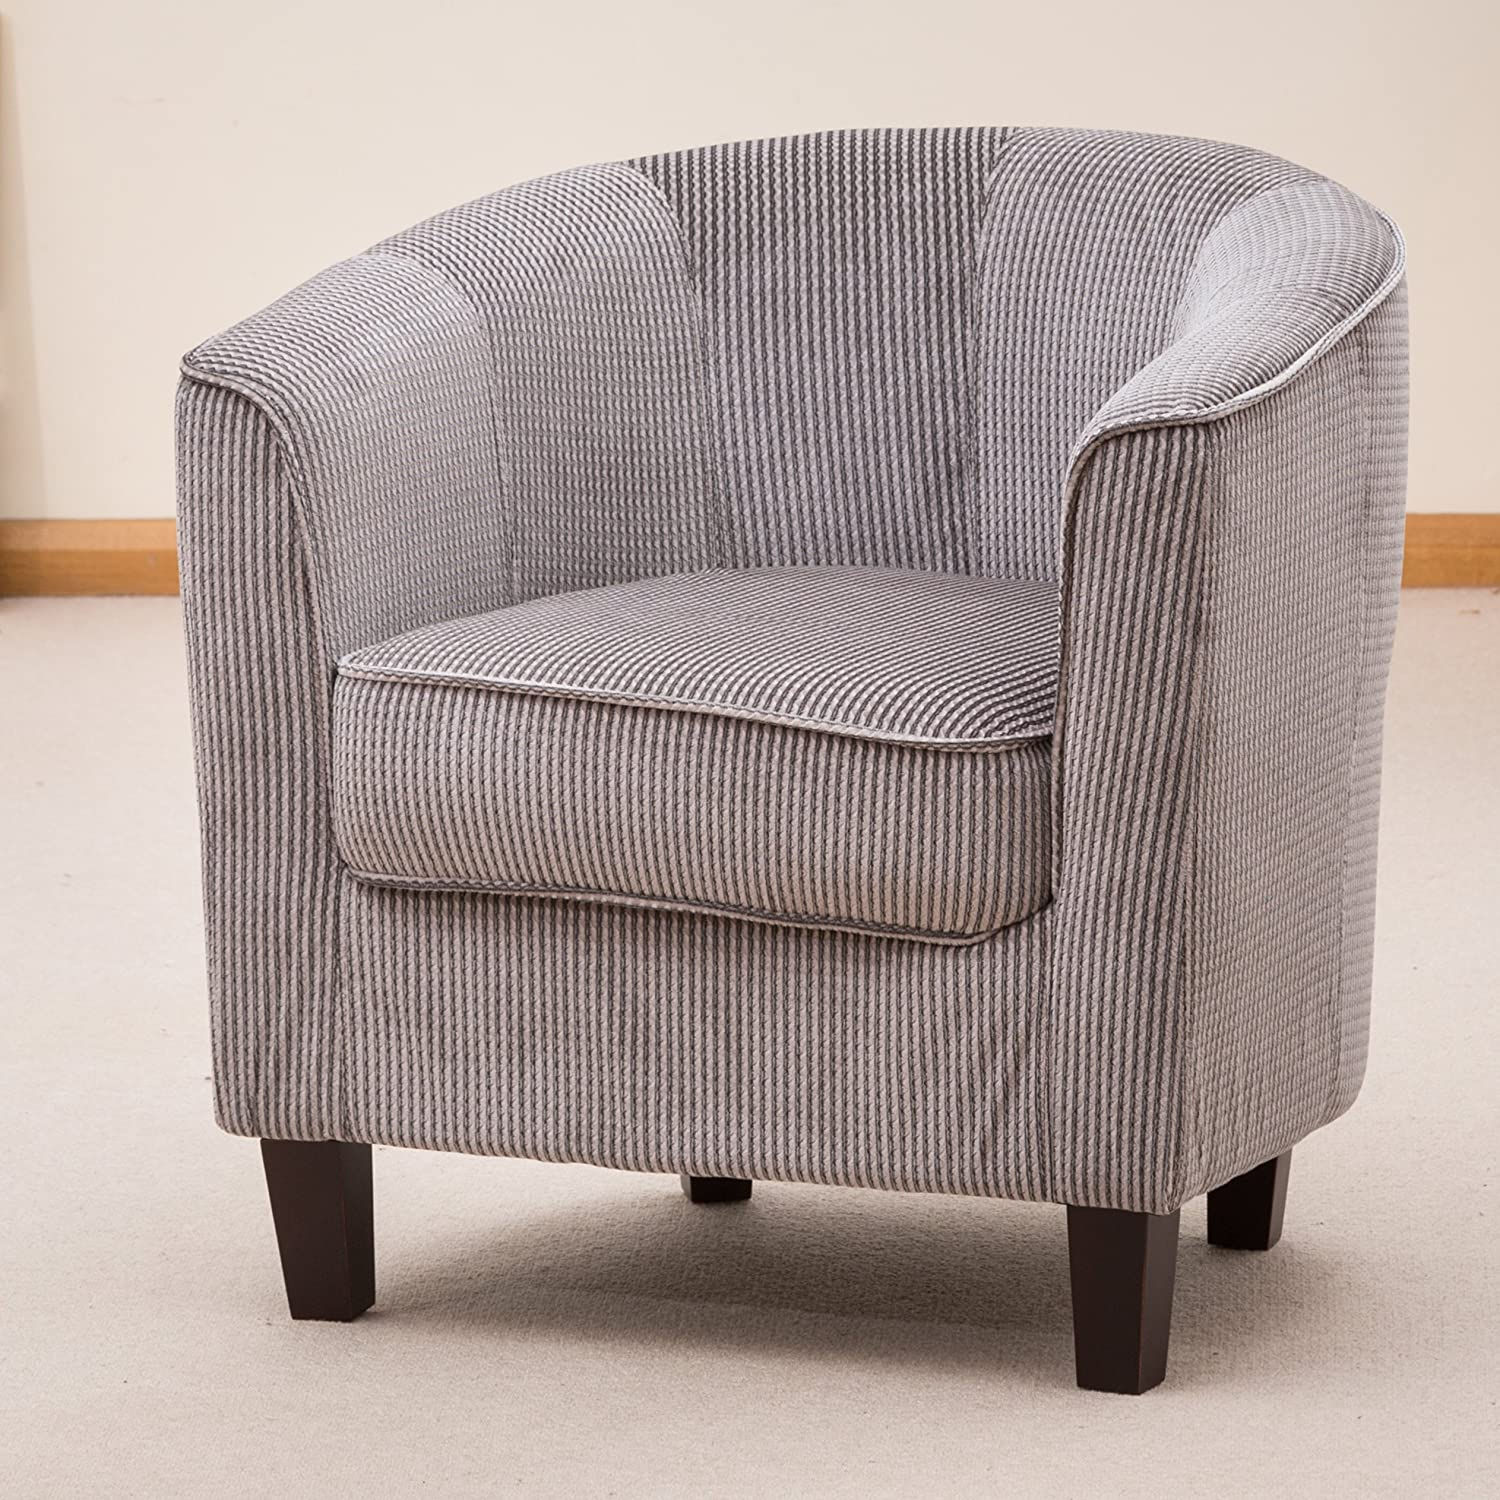 Sofa Collection Brand New Striped Tub Chair Armchair Seating